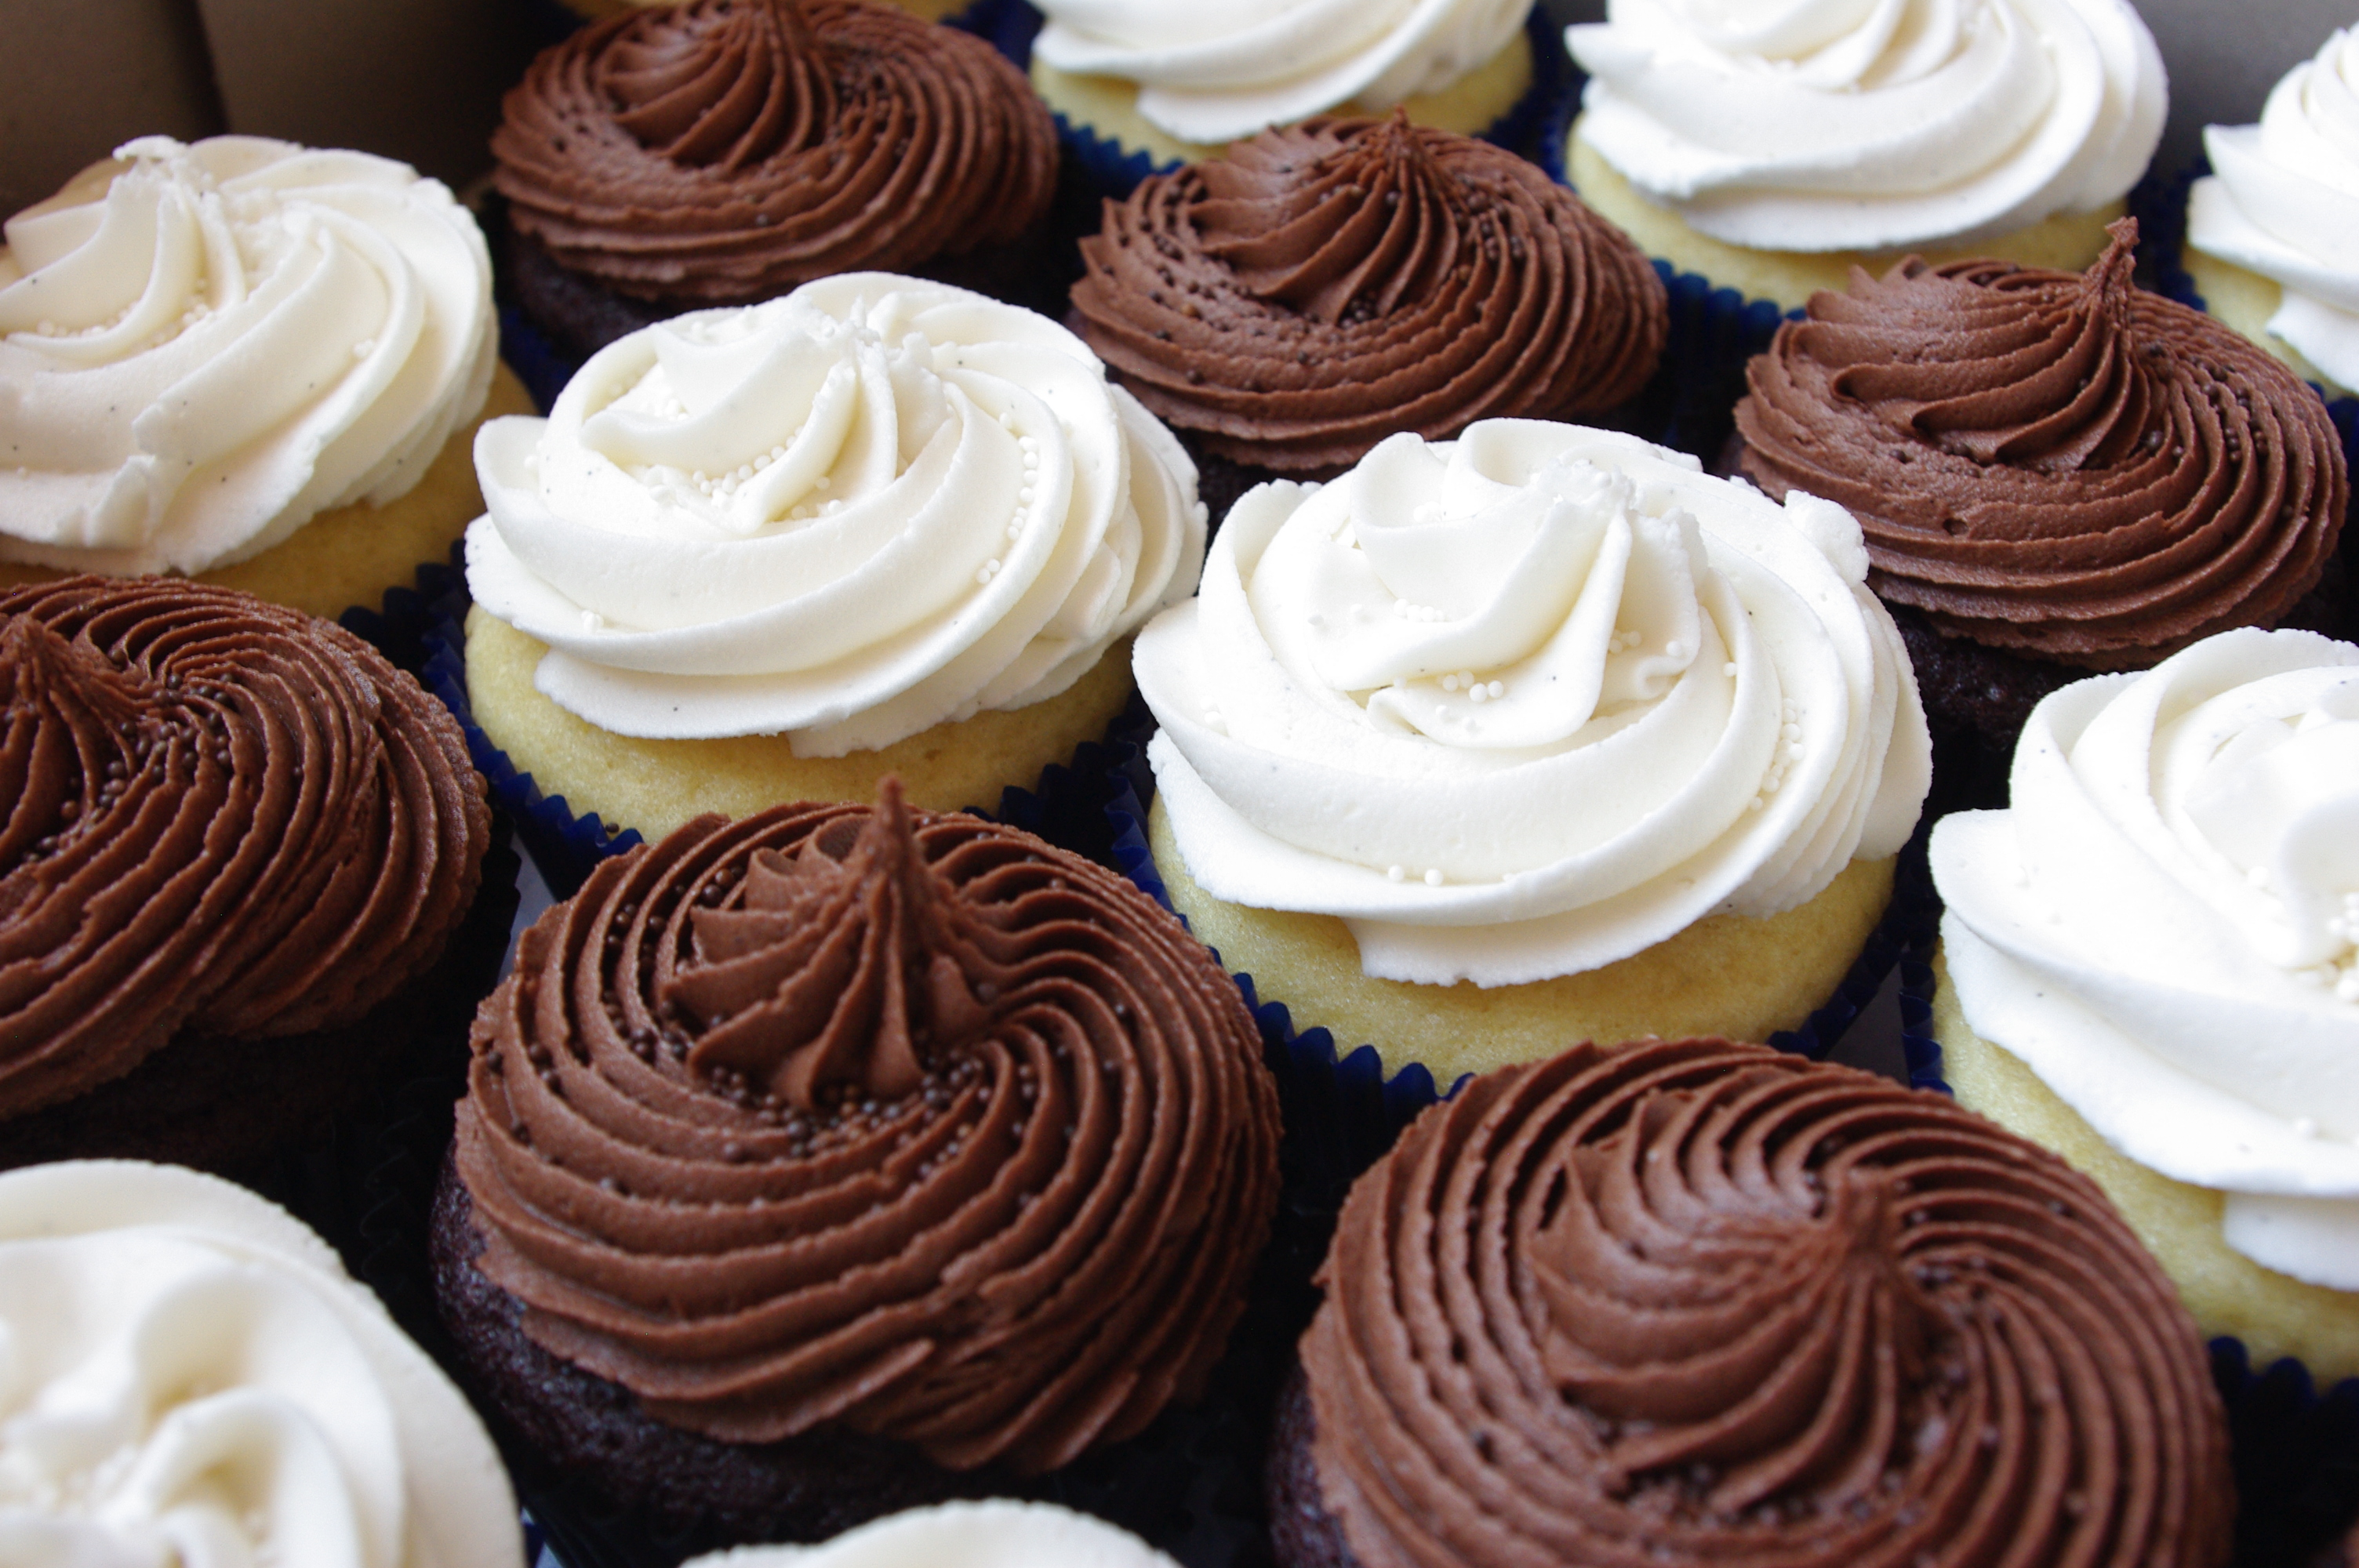 8 Photos of Chocolate Vanilla Cupcakes